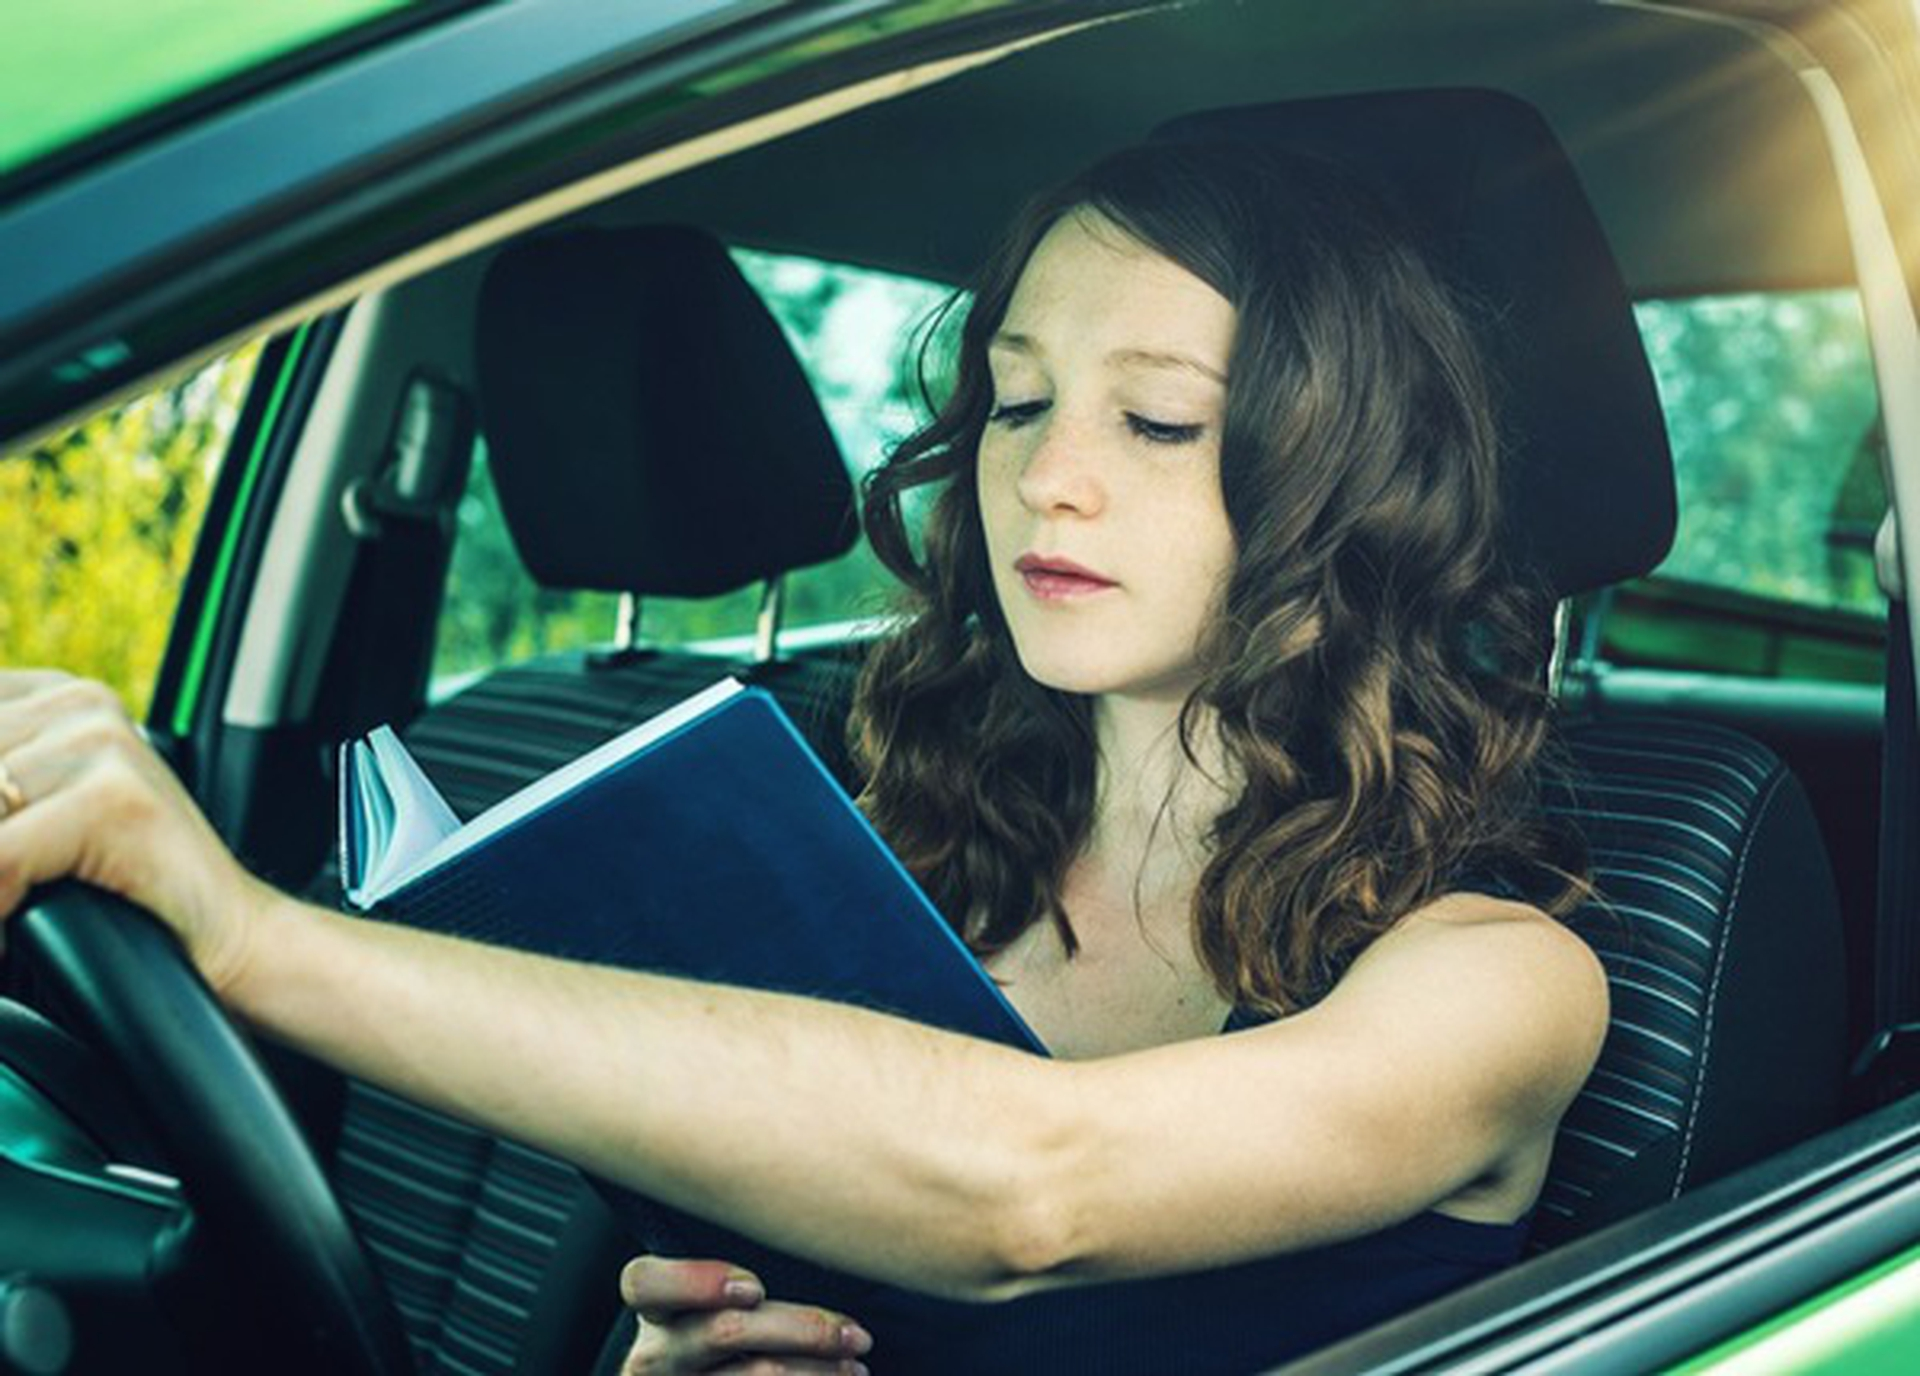 Distracted Driving - Reading Behind The Wheel